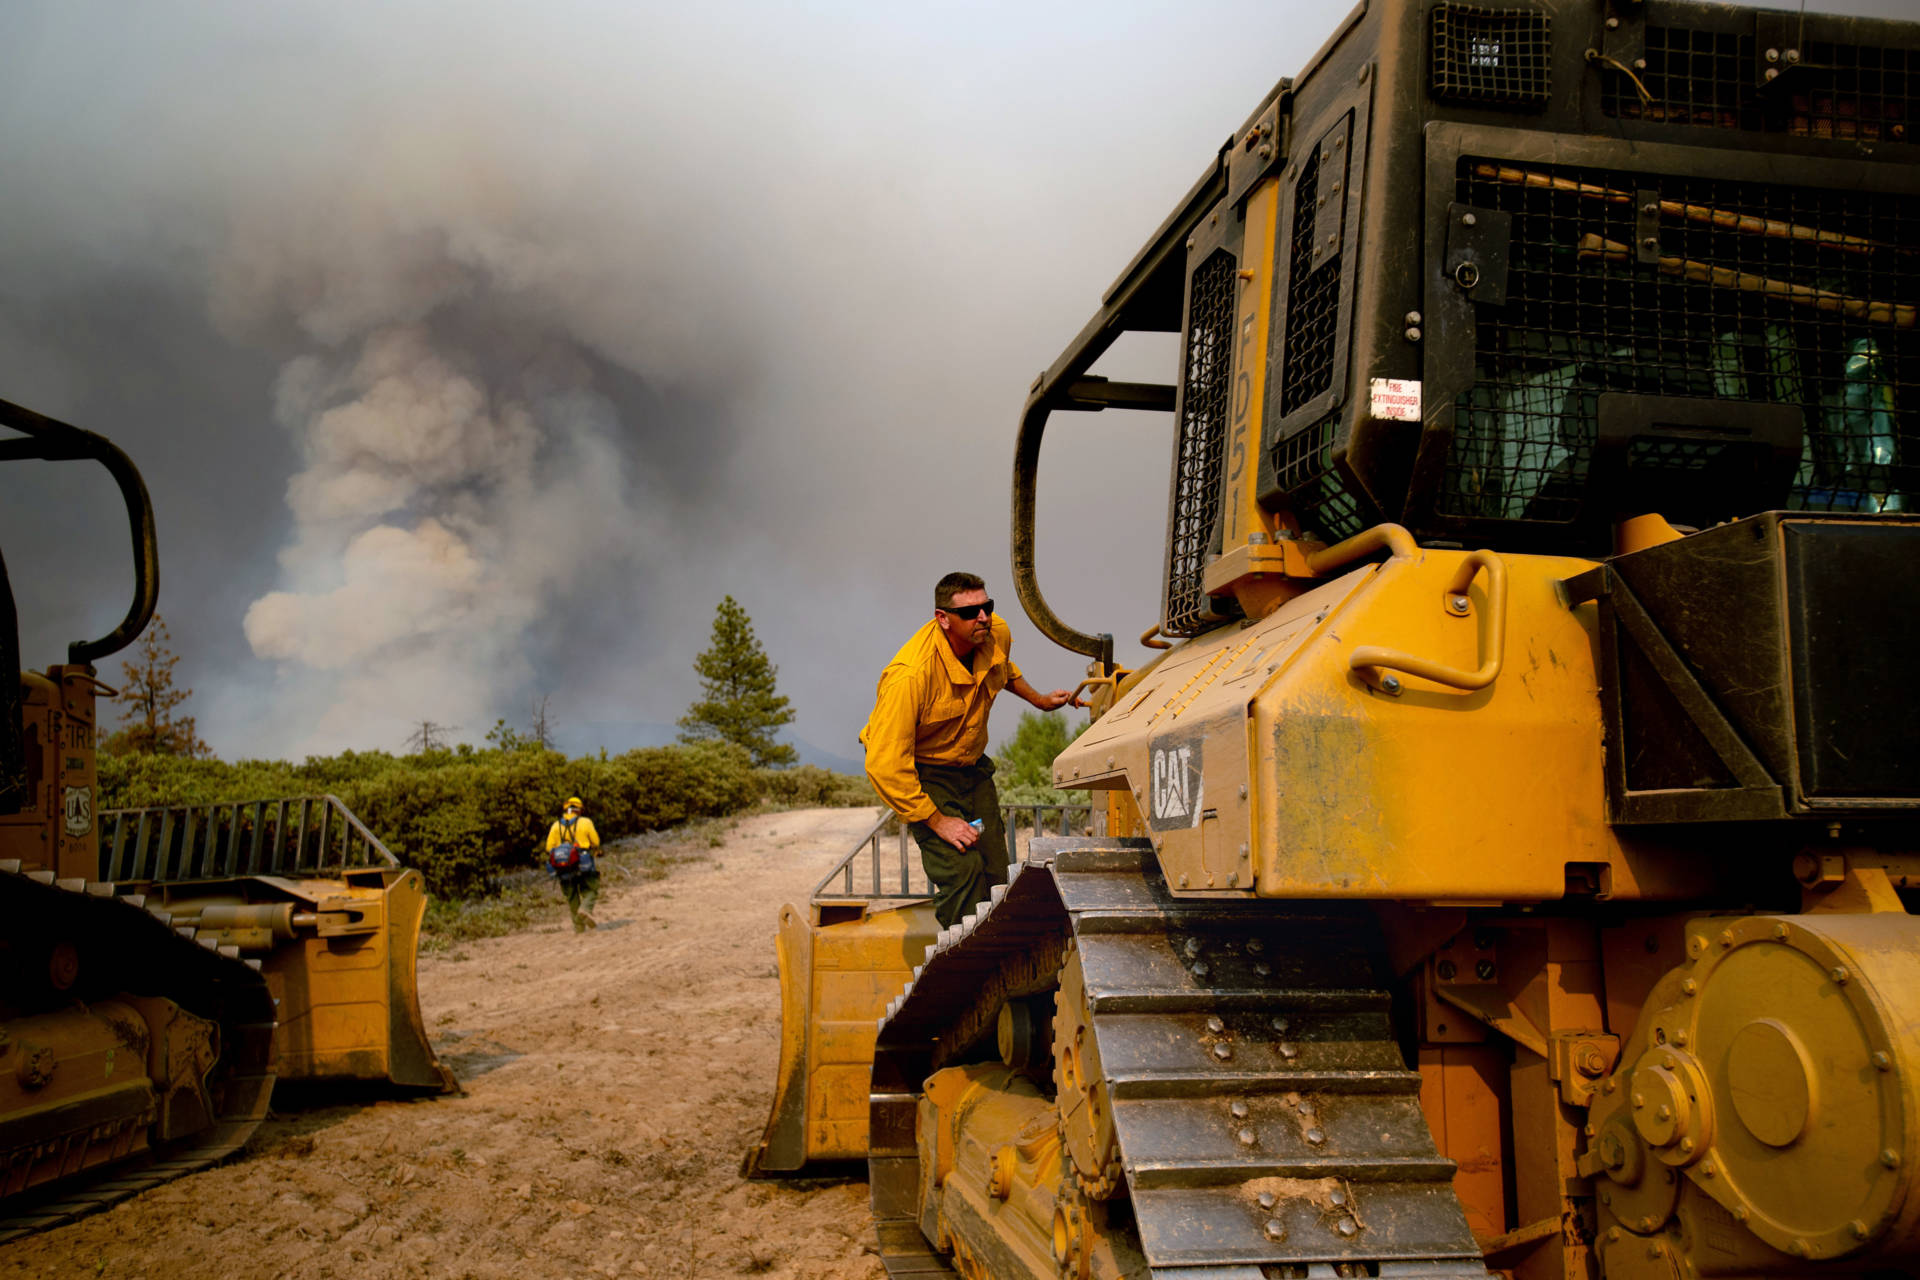 A dozer operator prepares to create a fire break while battling the Ferguson fire in the Stanislaus National Forest, near Yosemite National Park on July 21, 2018. NOAH BERGER/AFP/Getty Images